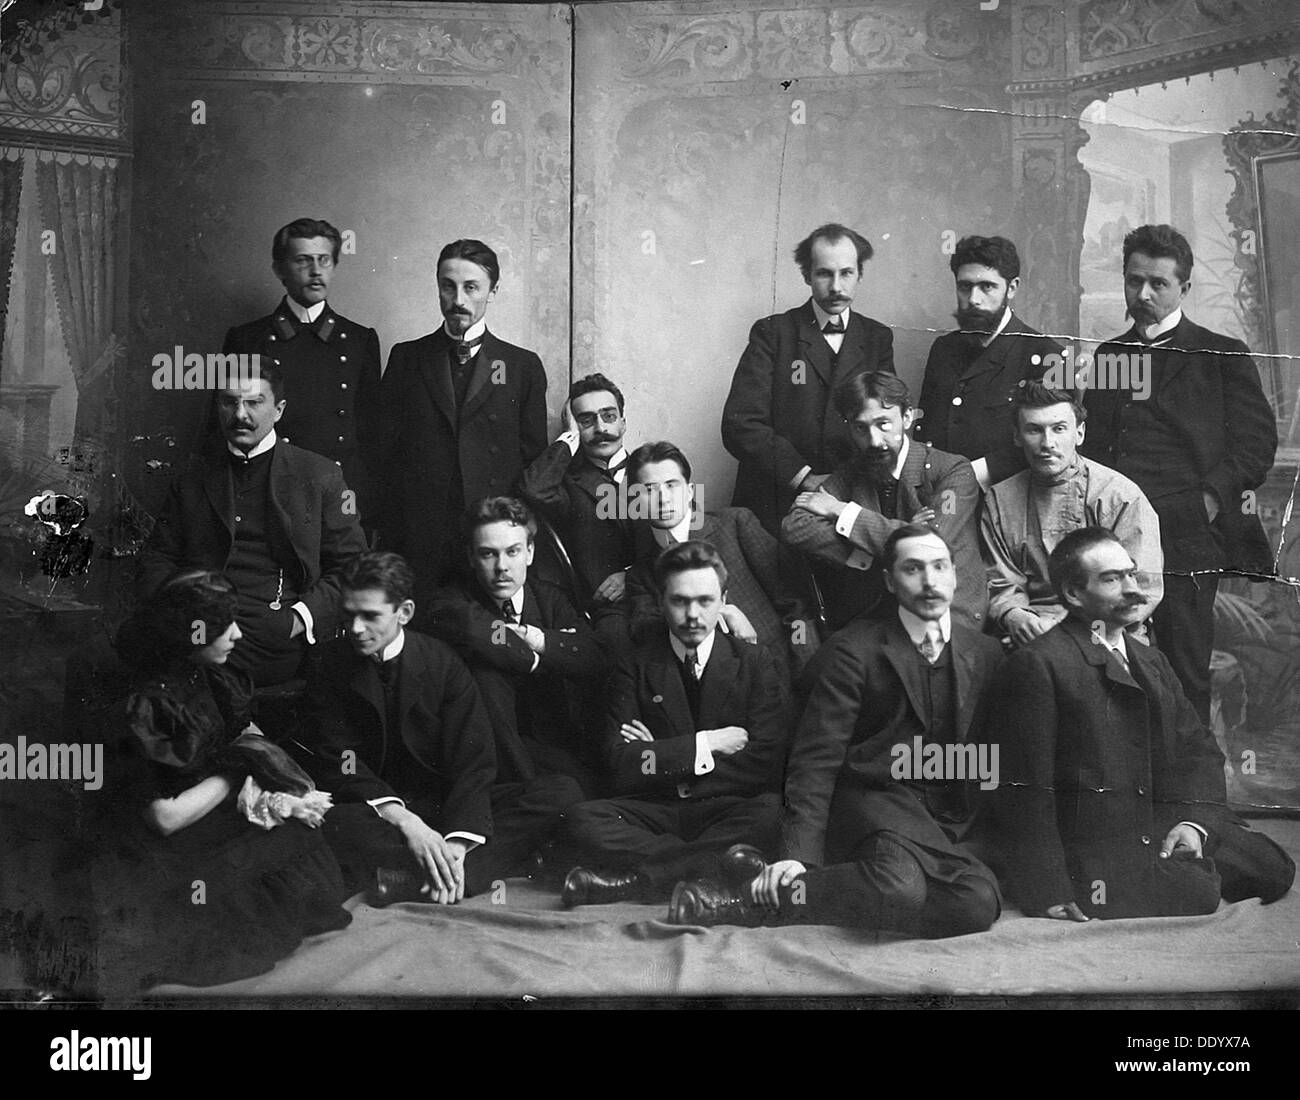 Russian author and poet Andrei Bely with symbolist authors, 1907. - Stock Image